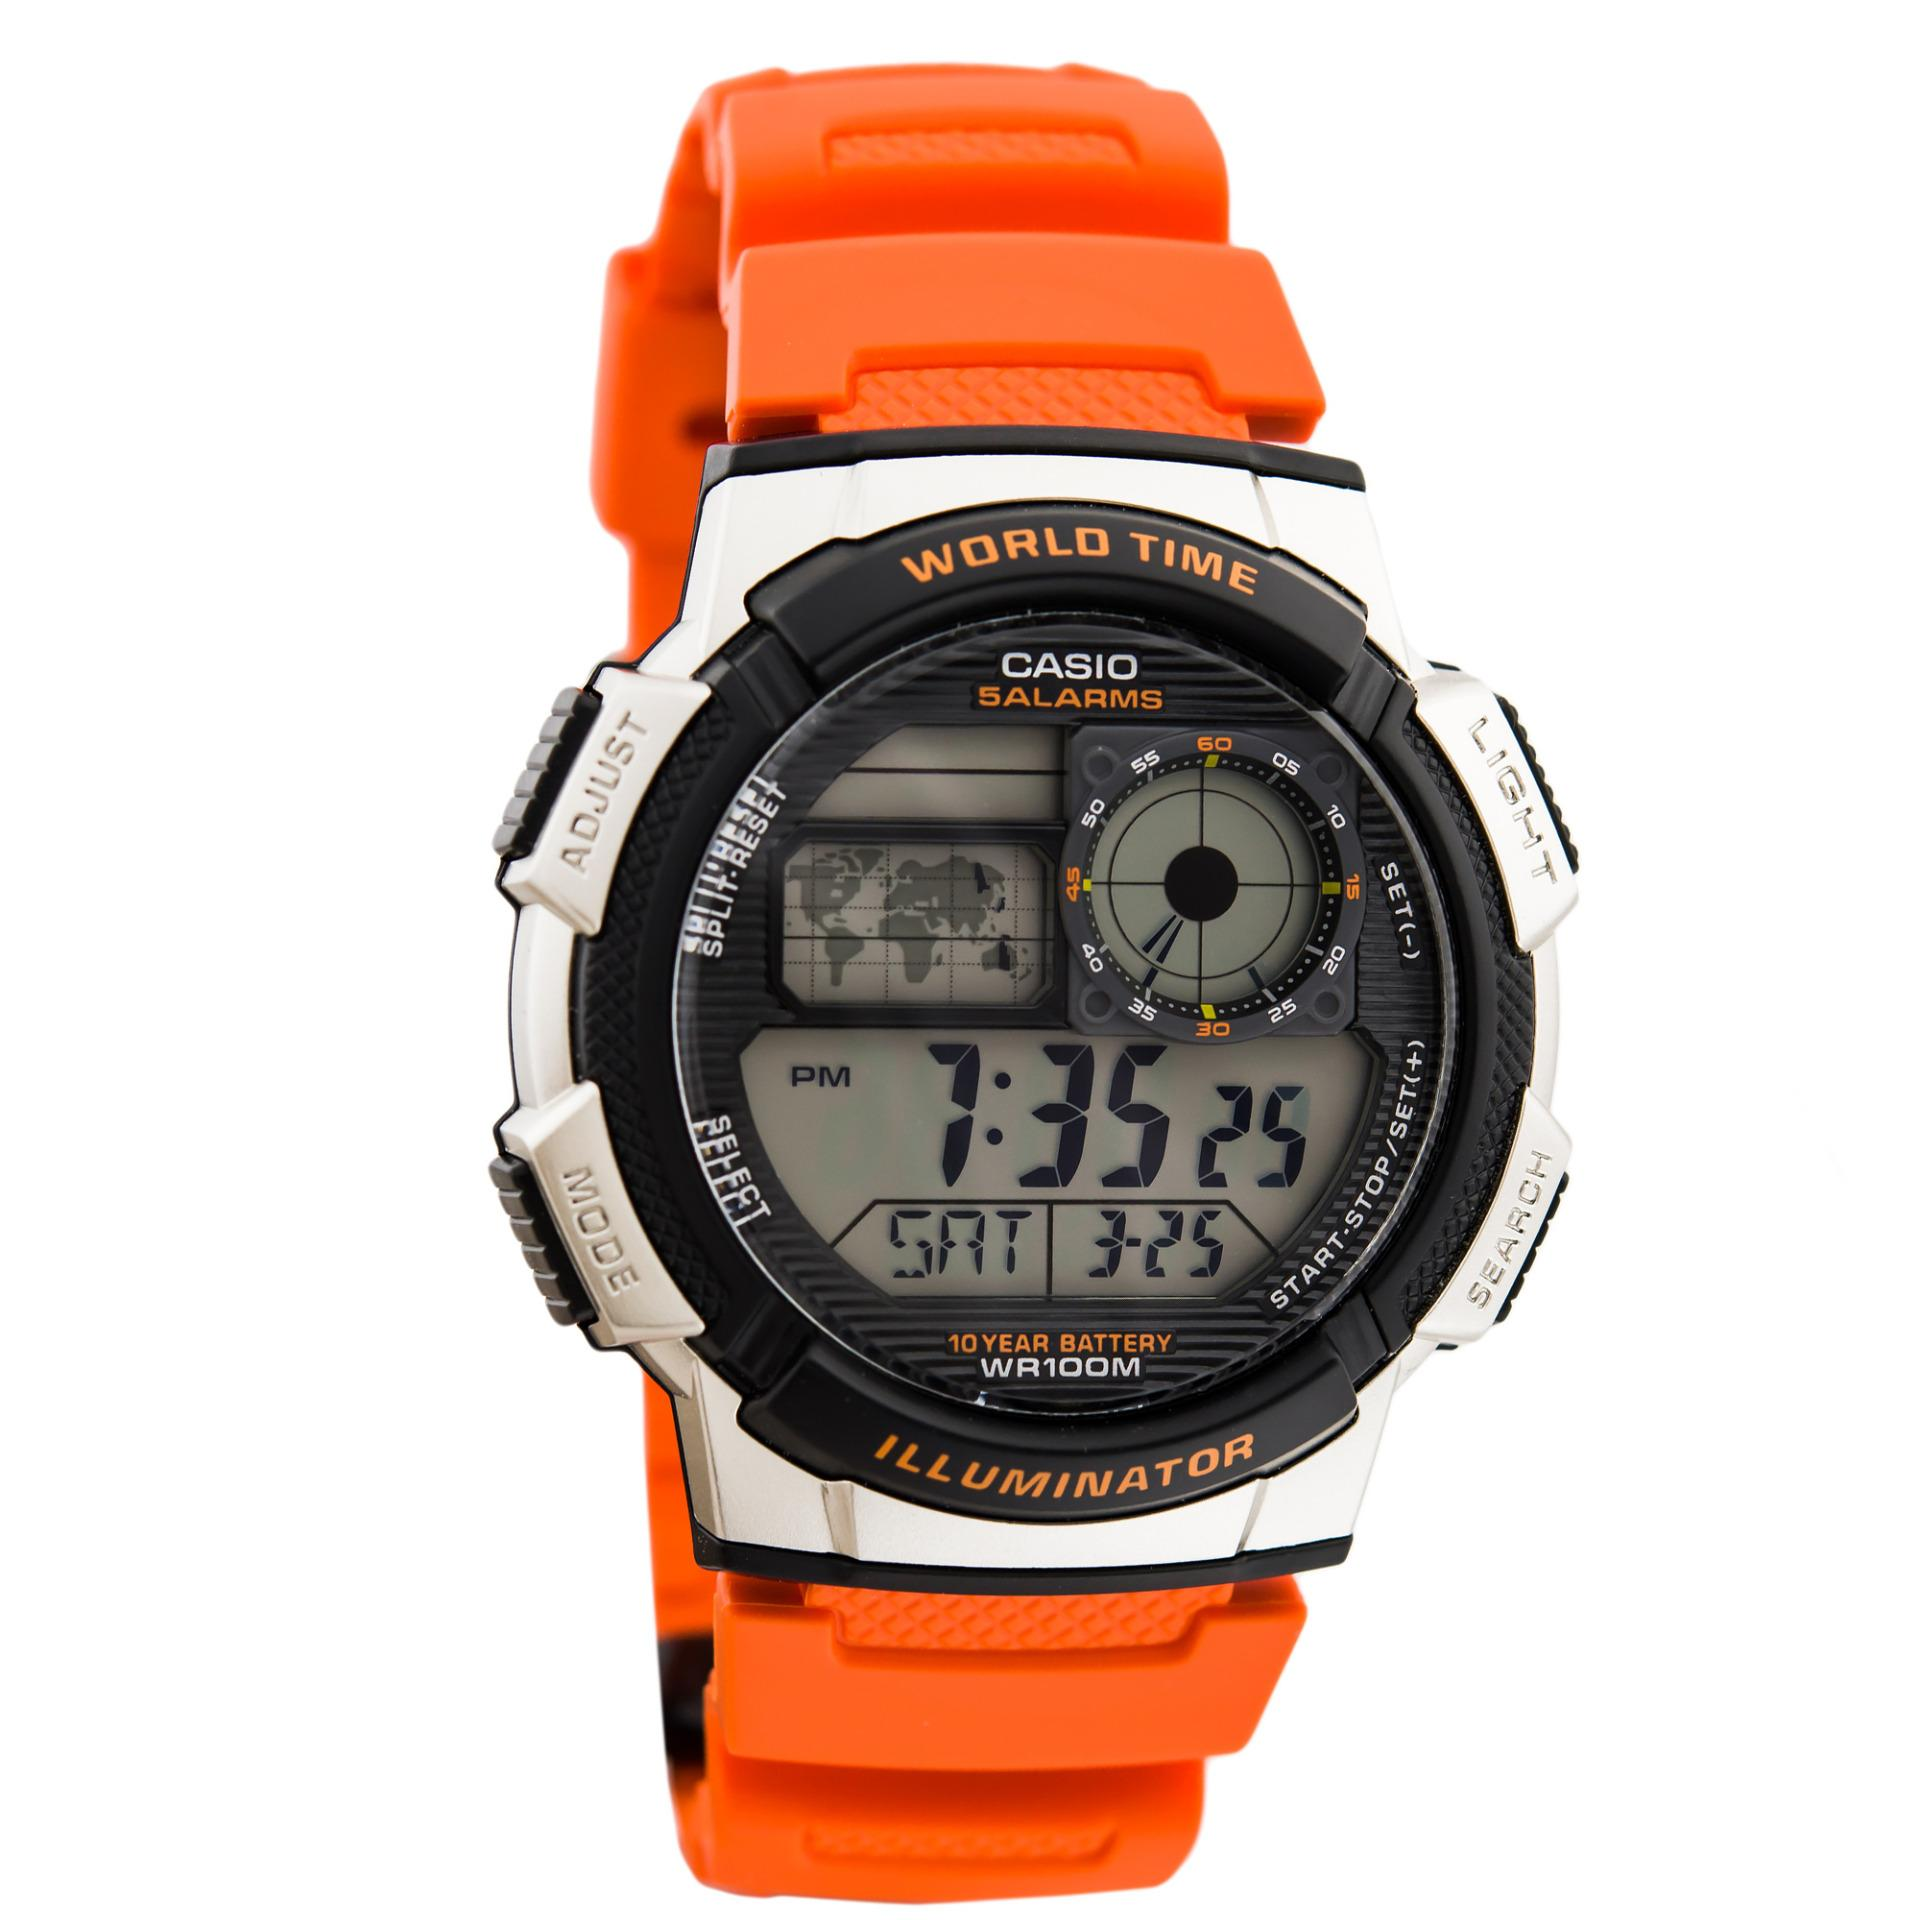 CASIO Illuminator AE-1000W - Jam Tangan Sporty Pria - Tali Karet - Digital Movement